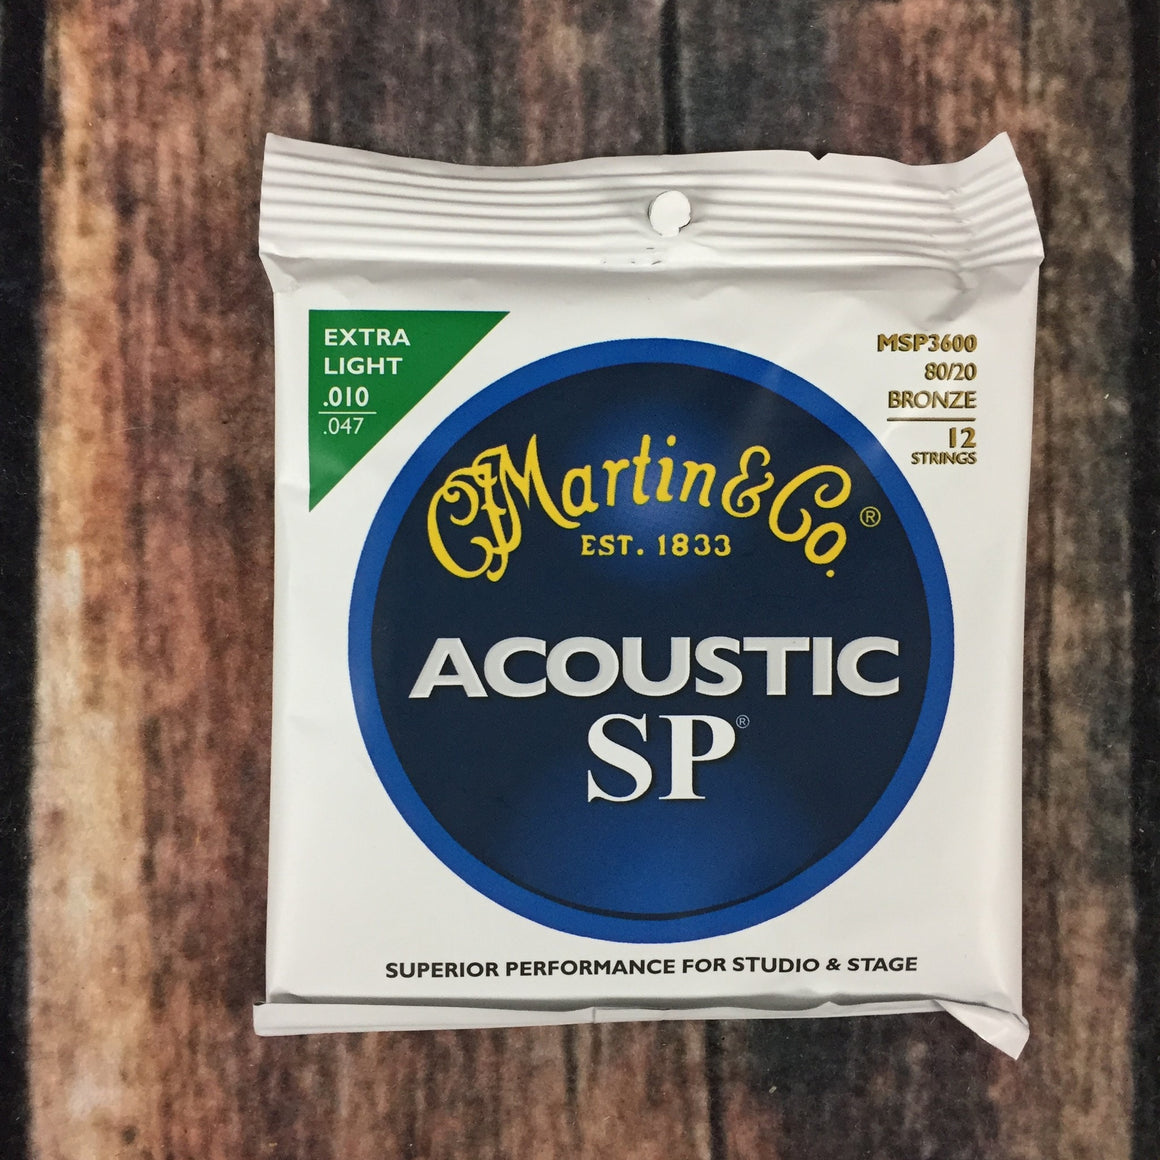 C.F. Martin Guitars Acoustic Guitar Strings Martin MSP3600 3600 12 String Extra Light Acoustic Guitar Strings